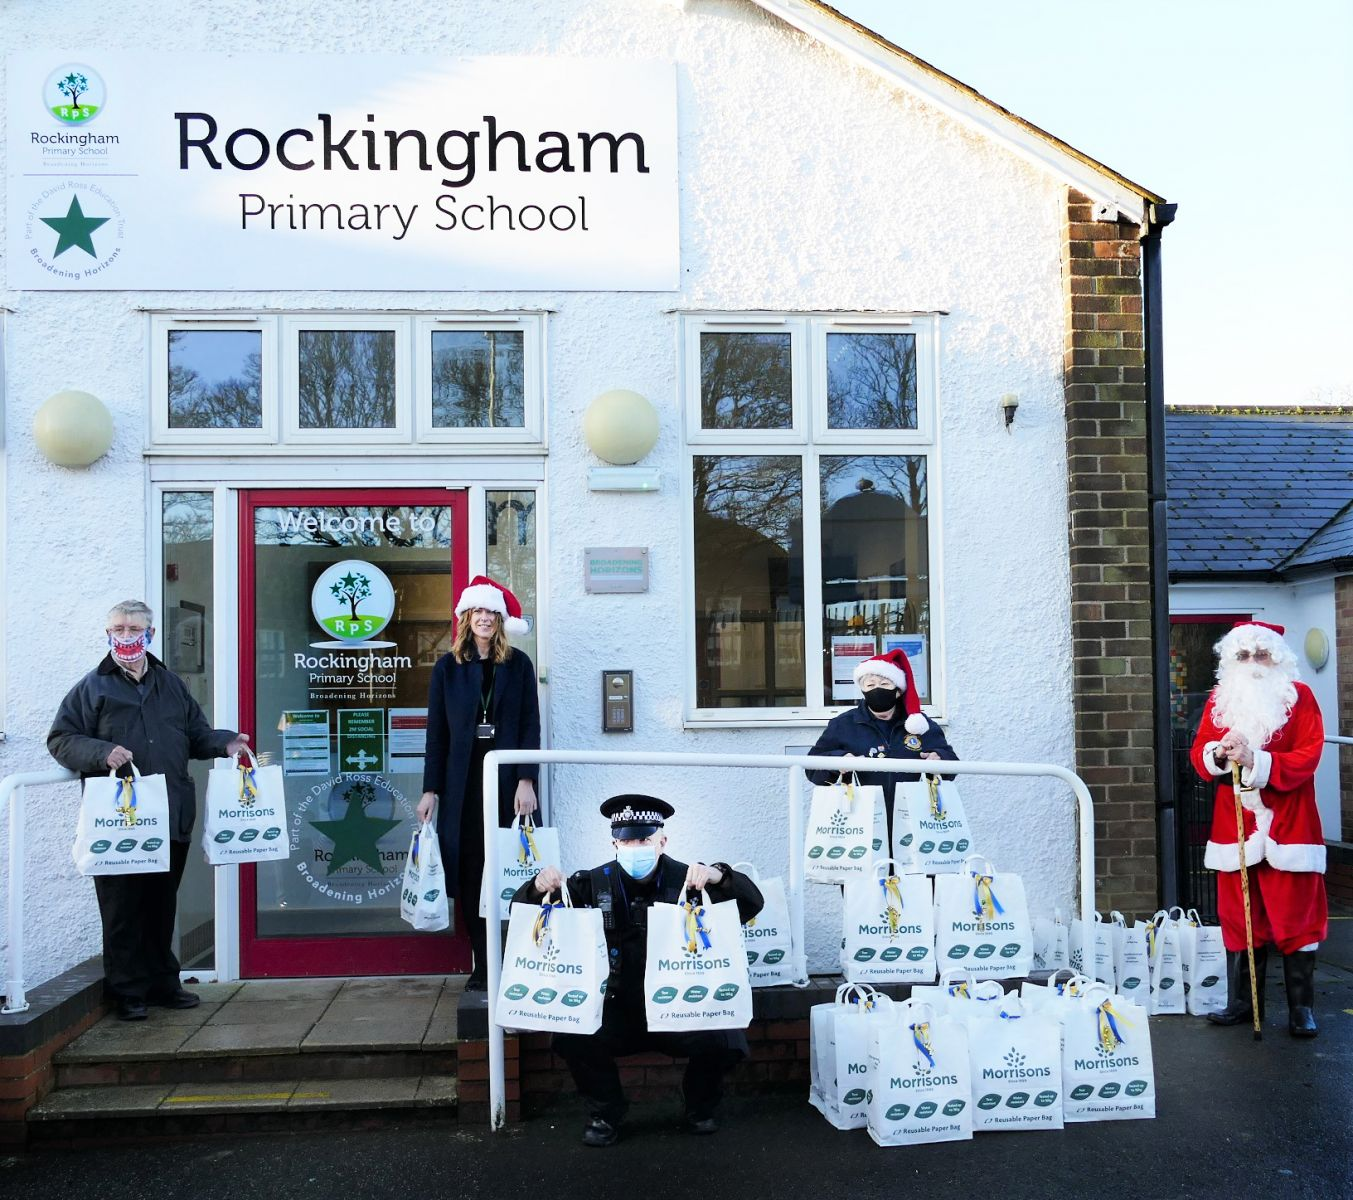 Corby & District Lions Club were contacted by PC Chris Vickers who through Tracey Hudson, head teacher at Rockingham Primary School highlighted the need for christmas treats for families, many who would have gone without. Corby Lions contacted Morrisons where Tricia Robins, the Community Champion assisted with purchasing and packing over 40 bags of Christmas treats. Working together with Corby community, Corby Lions members along with Santa Claus (Ronnie Vickers), Jenny Clarke, Dan Macdonald were able to spread goodwill at this difficult time. Corby lions would like to wish all a Very Merry Christmas and a Safe and Healthy 2021.